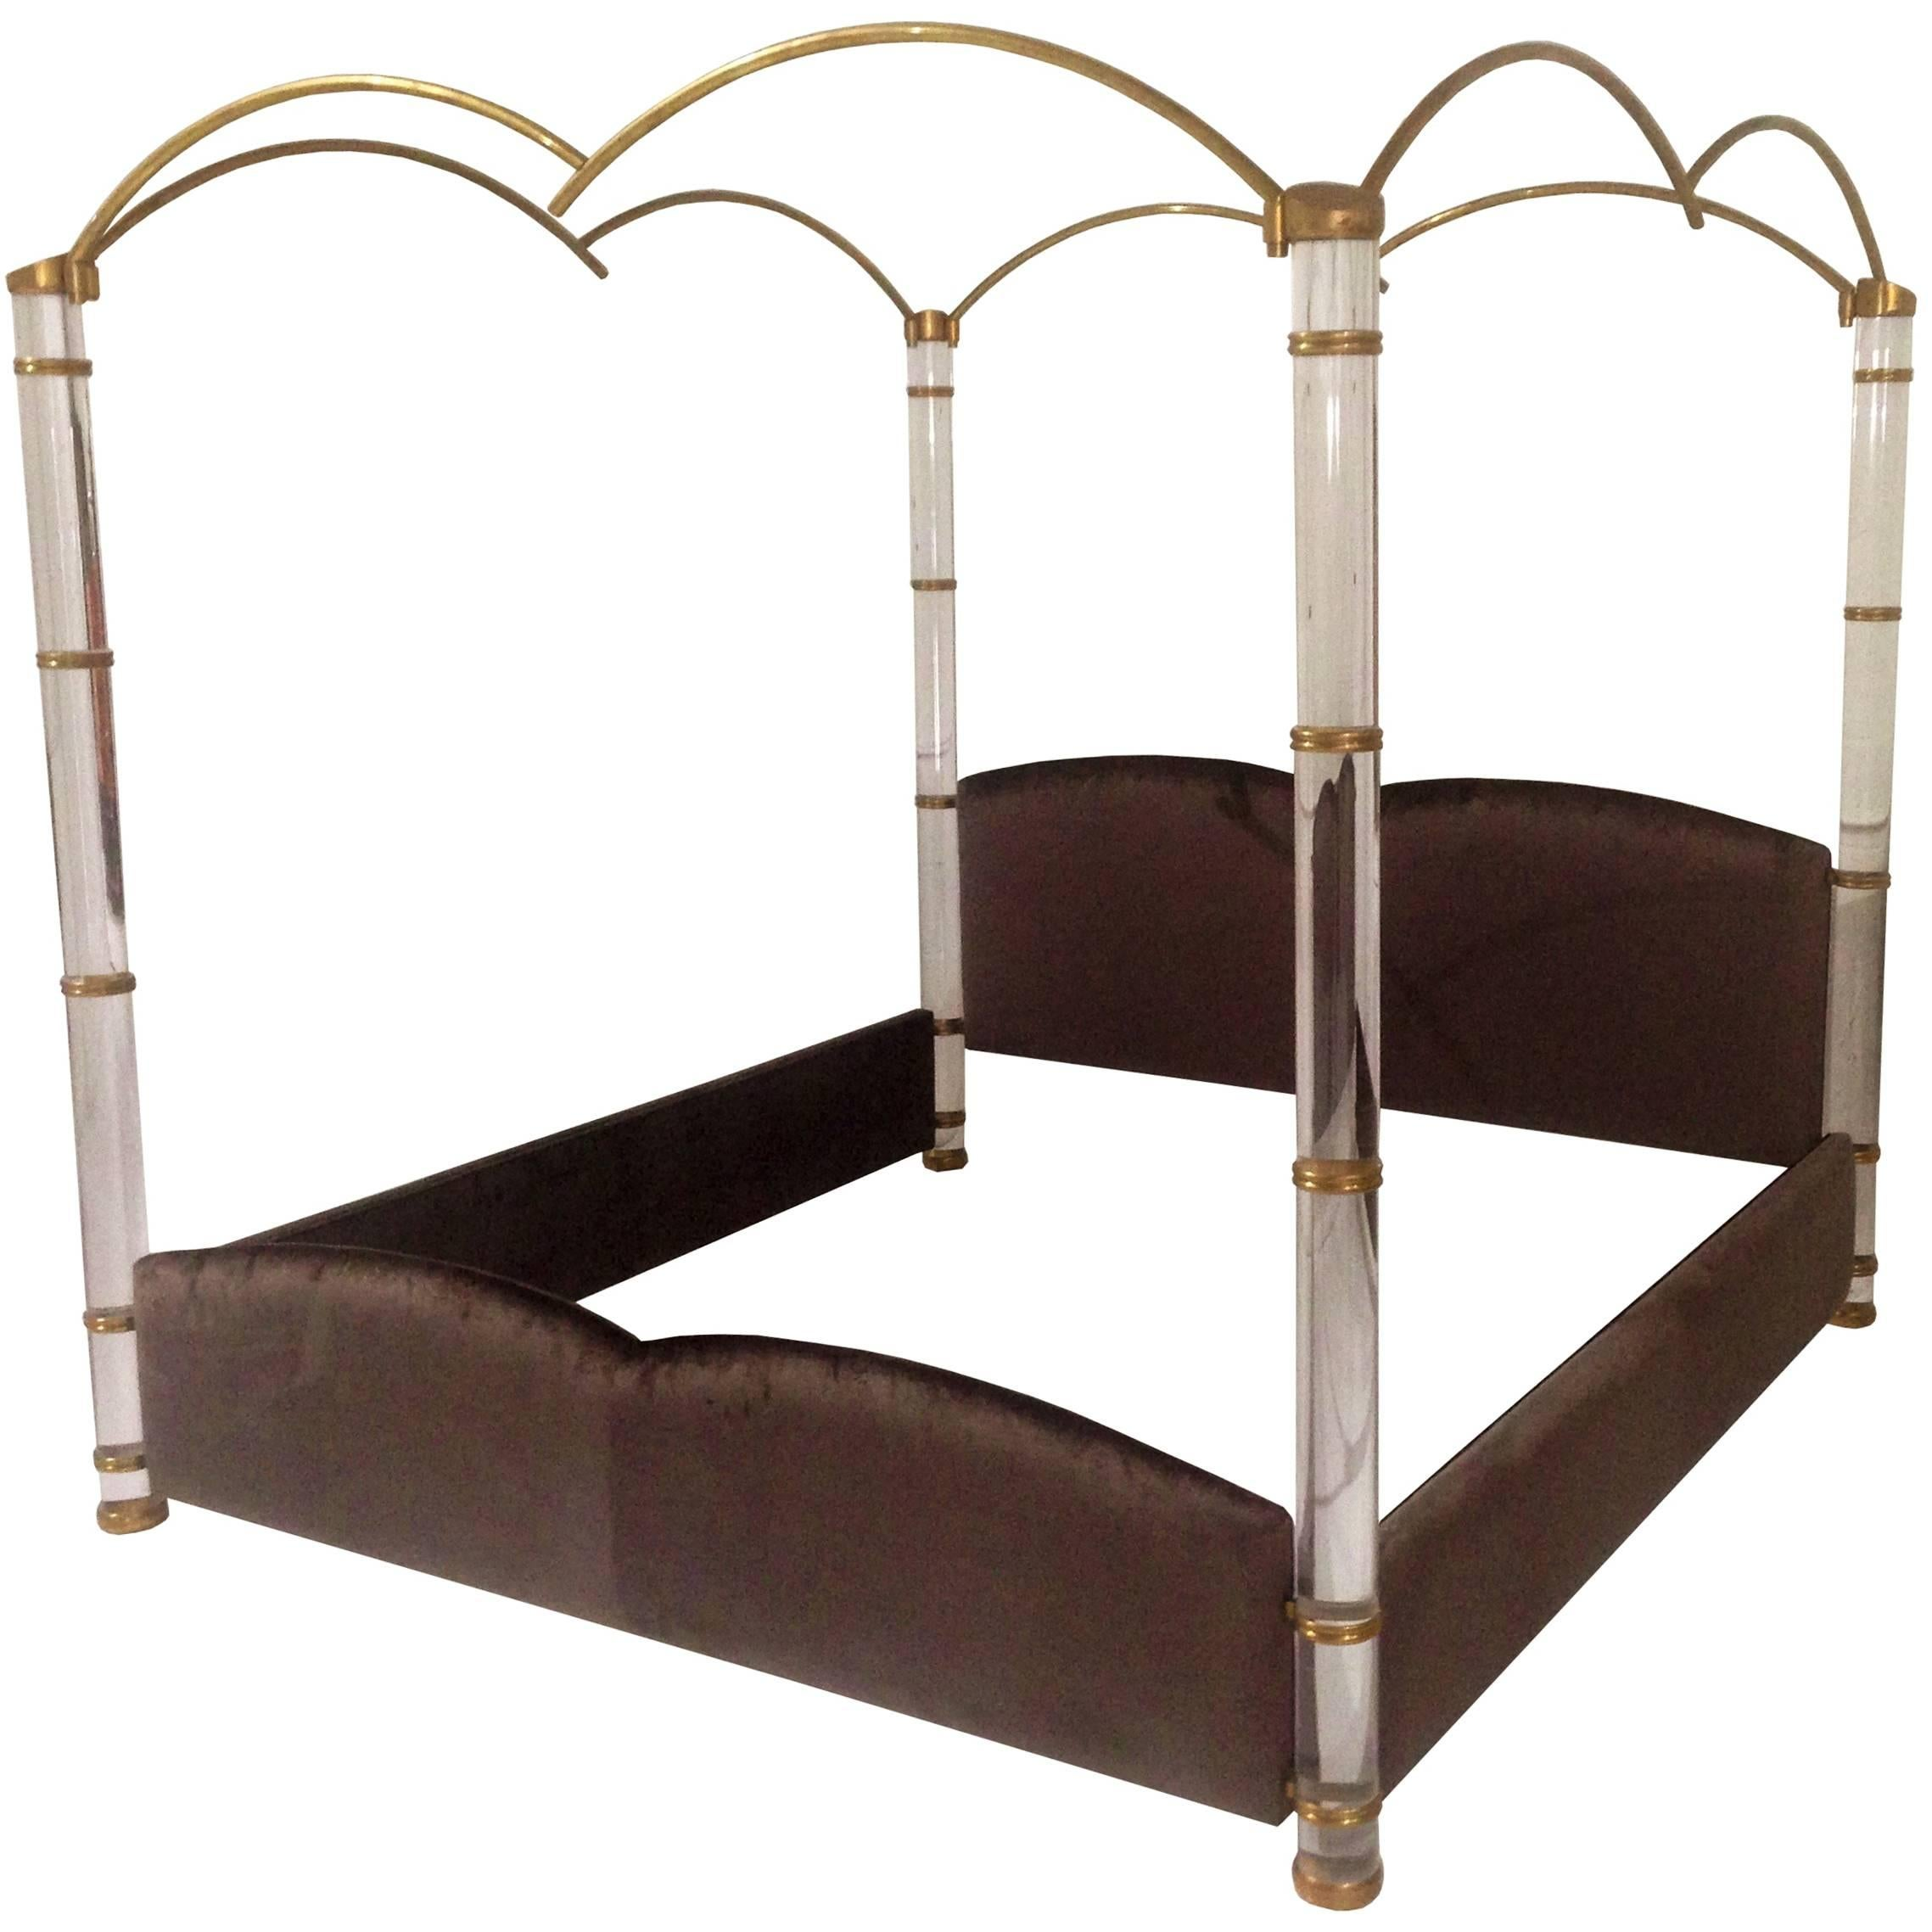 Antique And Vintage Beds And Bed Frames 1 617 For Sale At 1stdibs